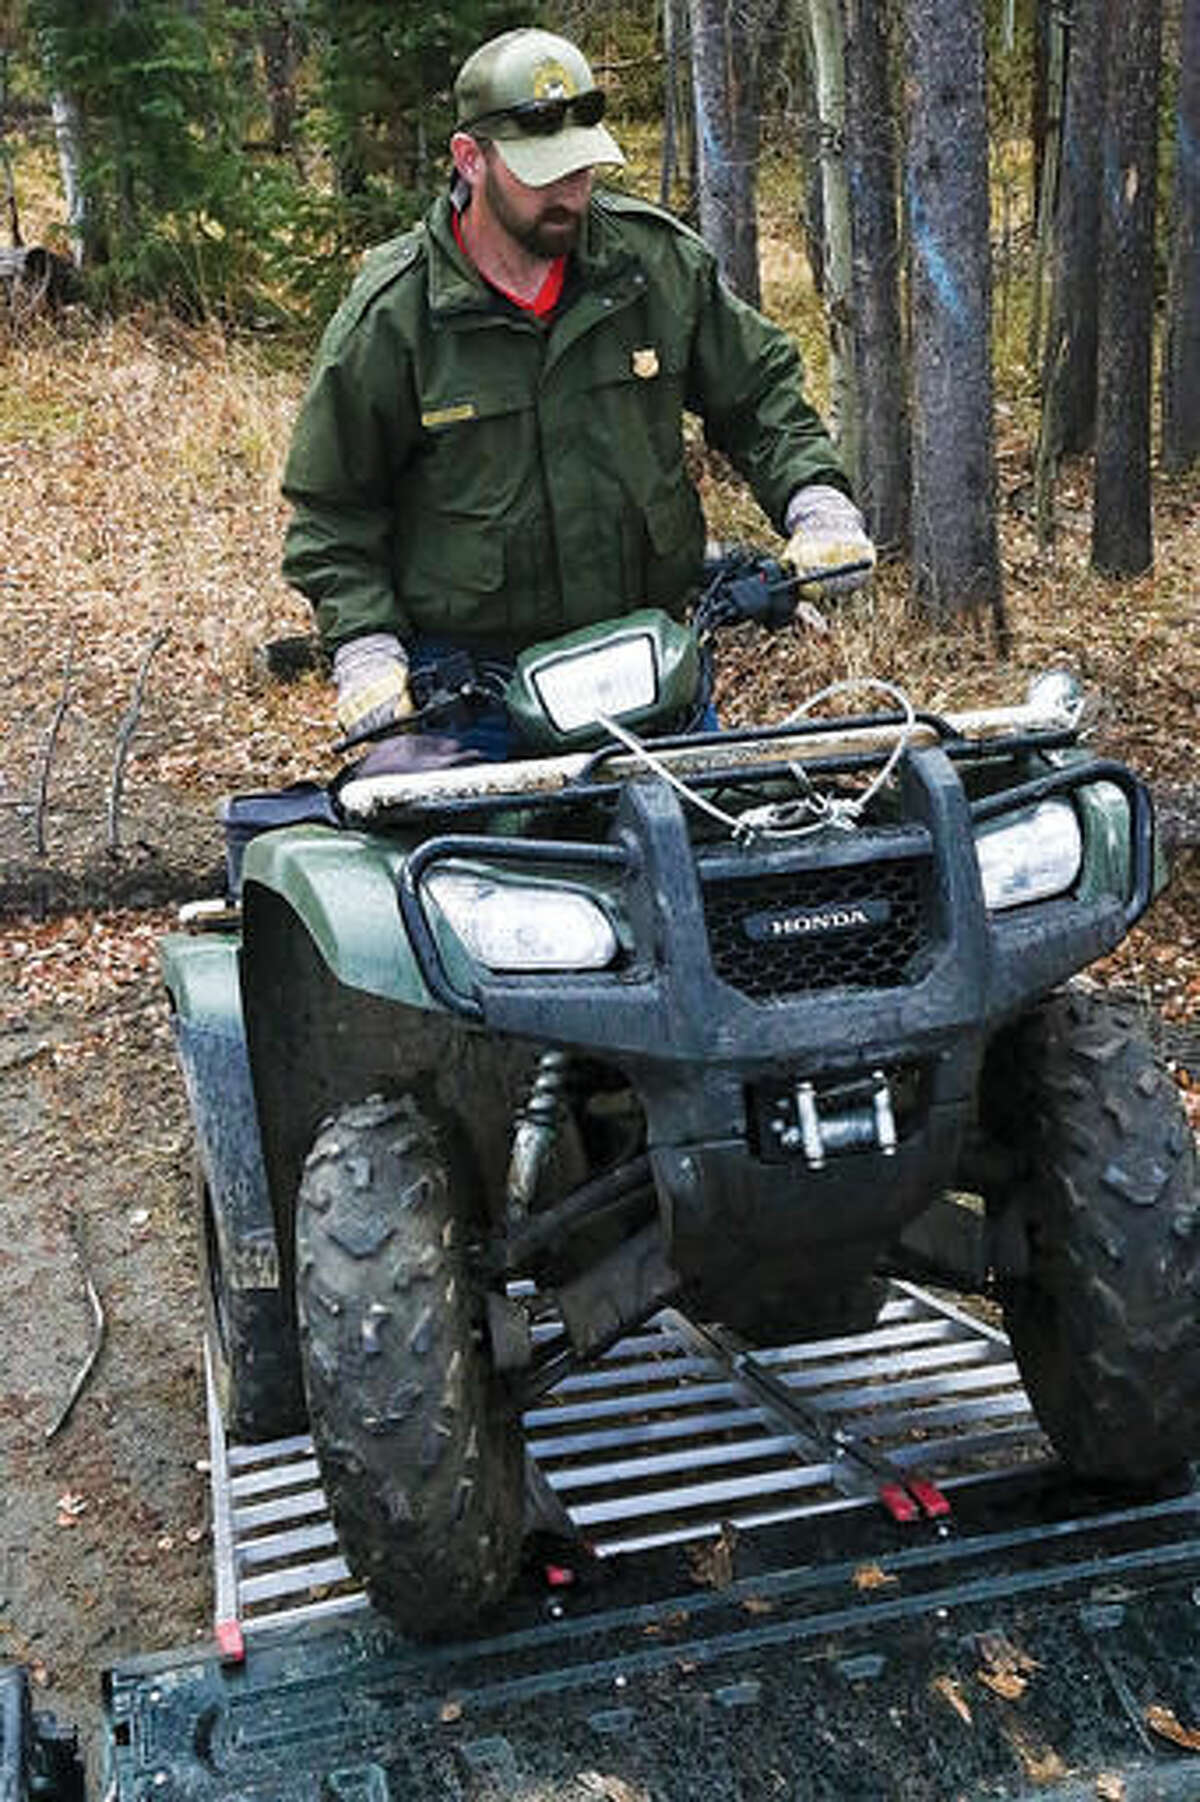 In this Oct. 29, 2016 photo, Wyoming Game and Fish Senior Game Warden Bill Brinegar drives an ATV up a ramp into the bed of a pickup truck in Laramie, Wyo. While his jurisdiction is statewide, Brinegar said he spends most of his time in the South Laramie Game Warden District. Instead of working in shifts, he said he is on call 24 hours a day, seven days a week. (Ike Fredregill/Laramie Boomerang via AP)